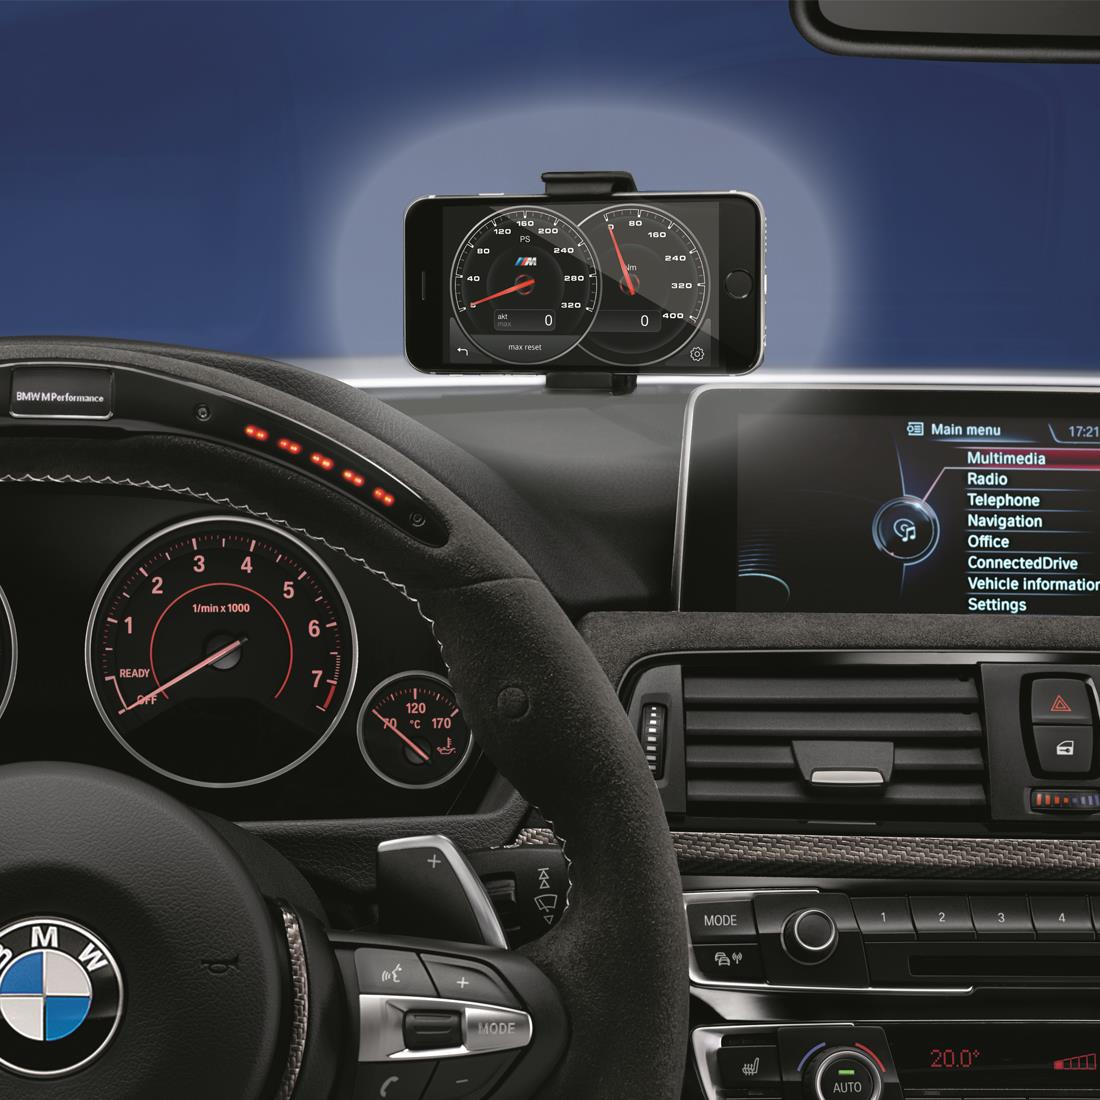 BMW Click & Drive System (fits standard iPhone 4, 5, 6, 7 & 8 models)